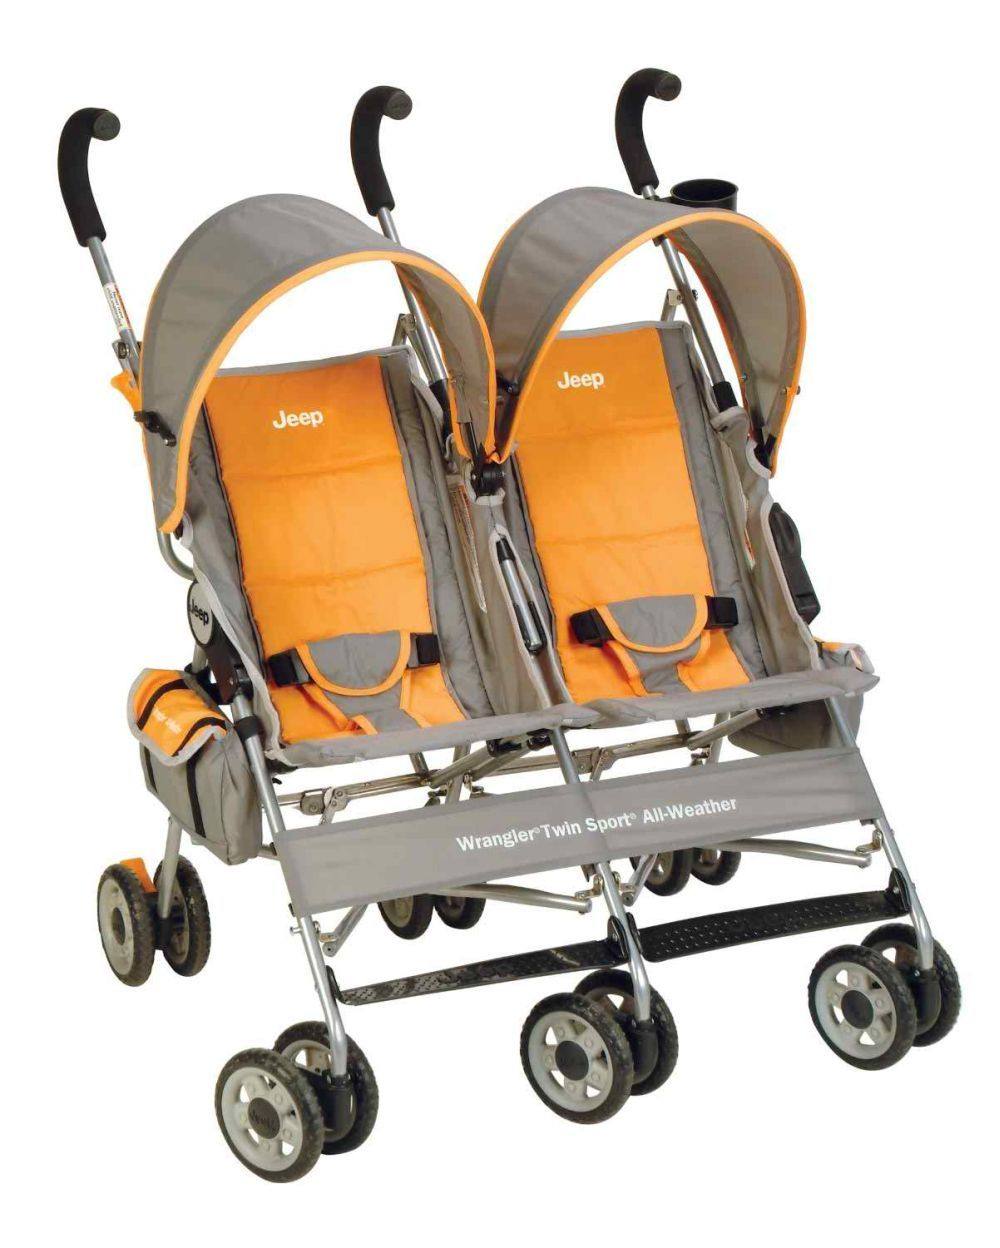 Best Baby Strollers Double, Umbrella, and Jogging Best